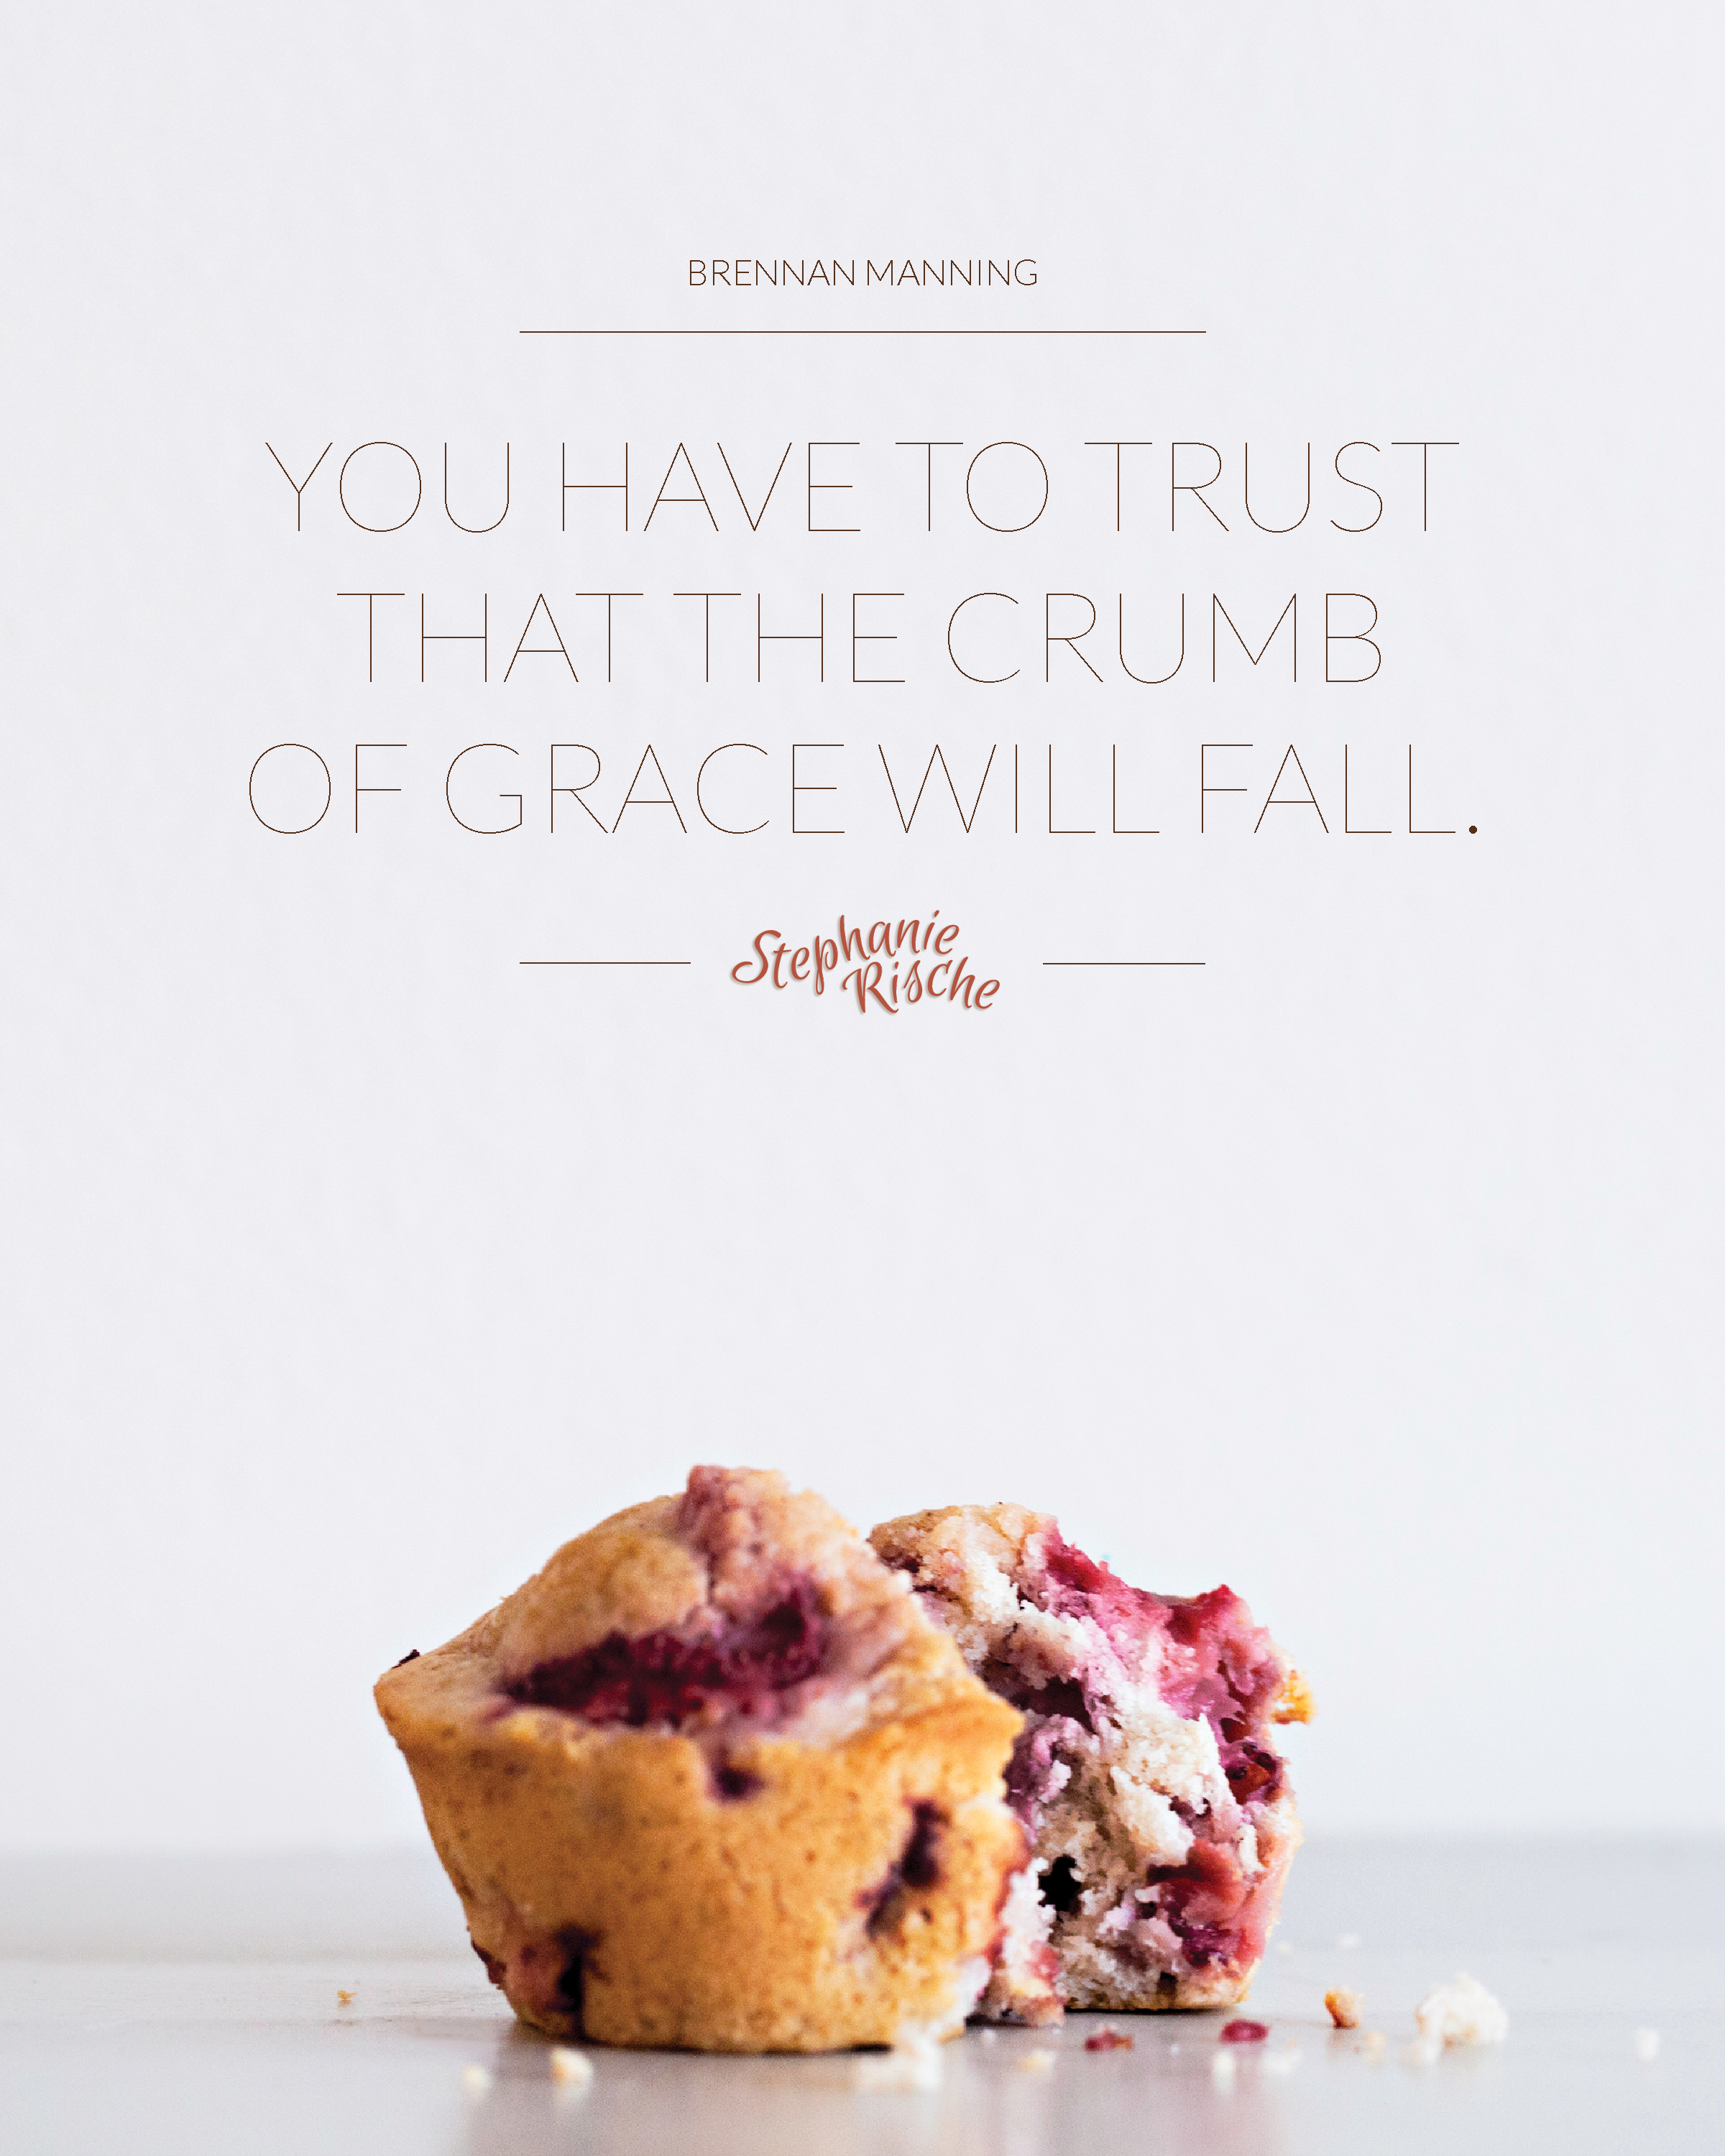 crumb_of_grace